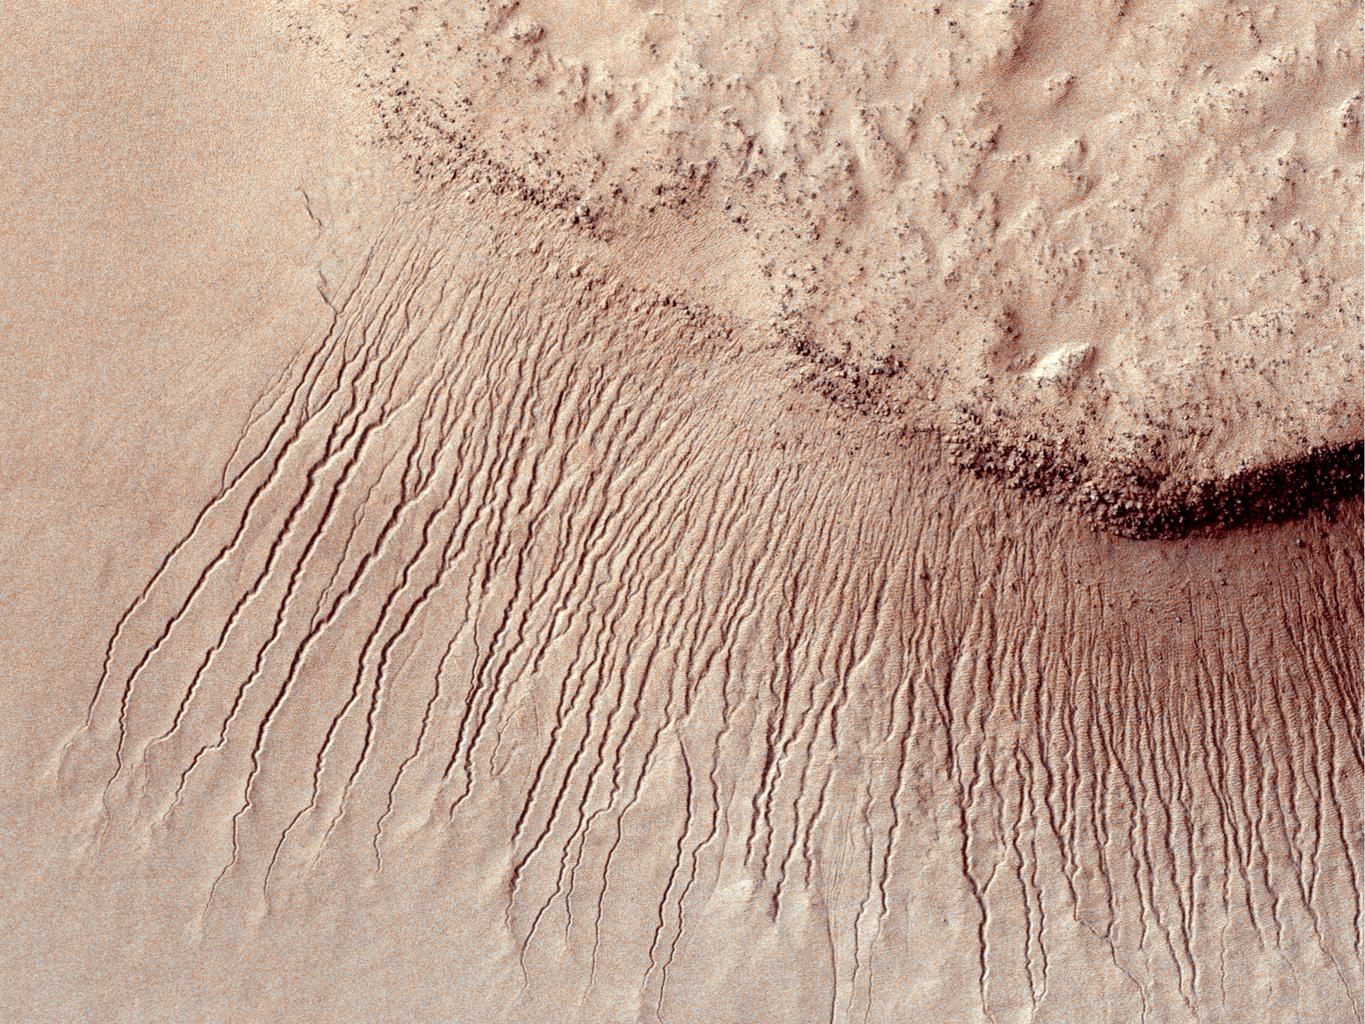 What could explain the mystery of how land formed on Mars without ...